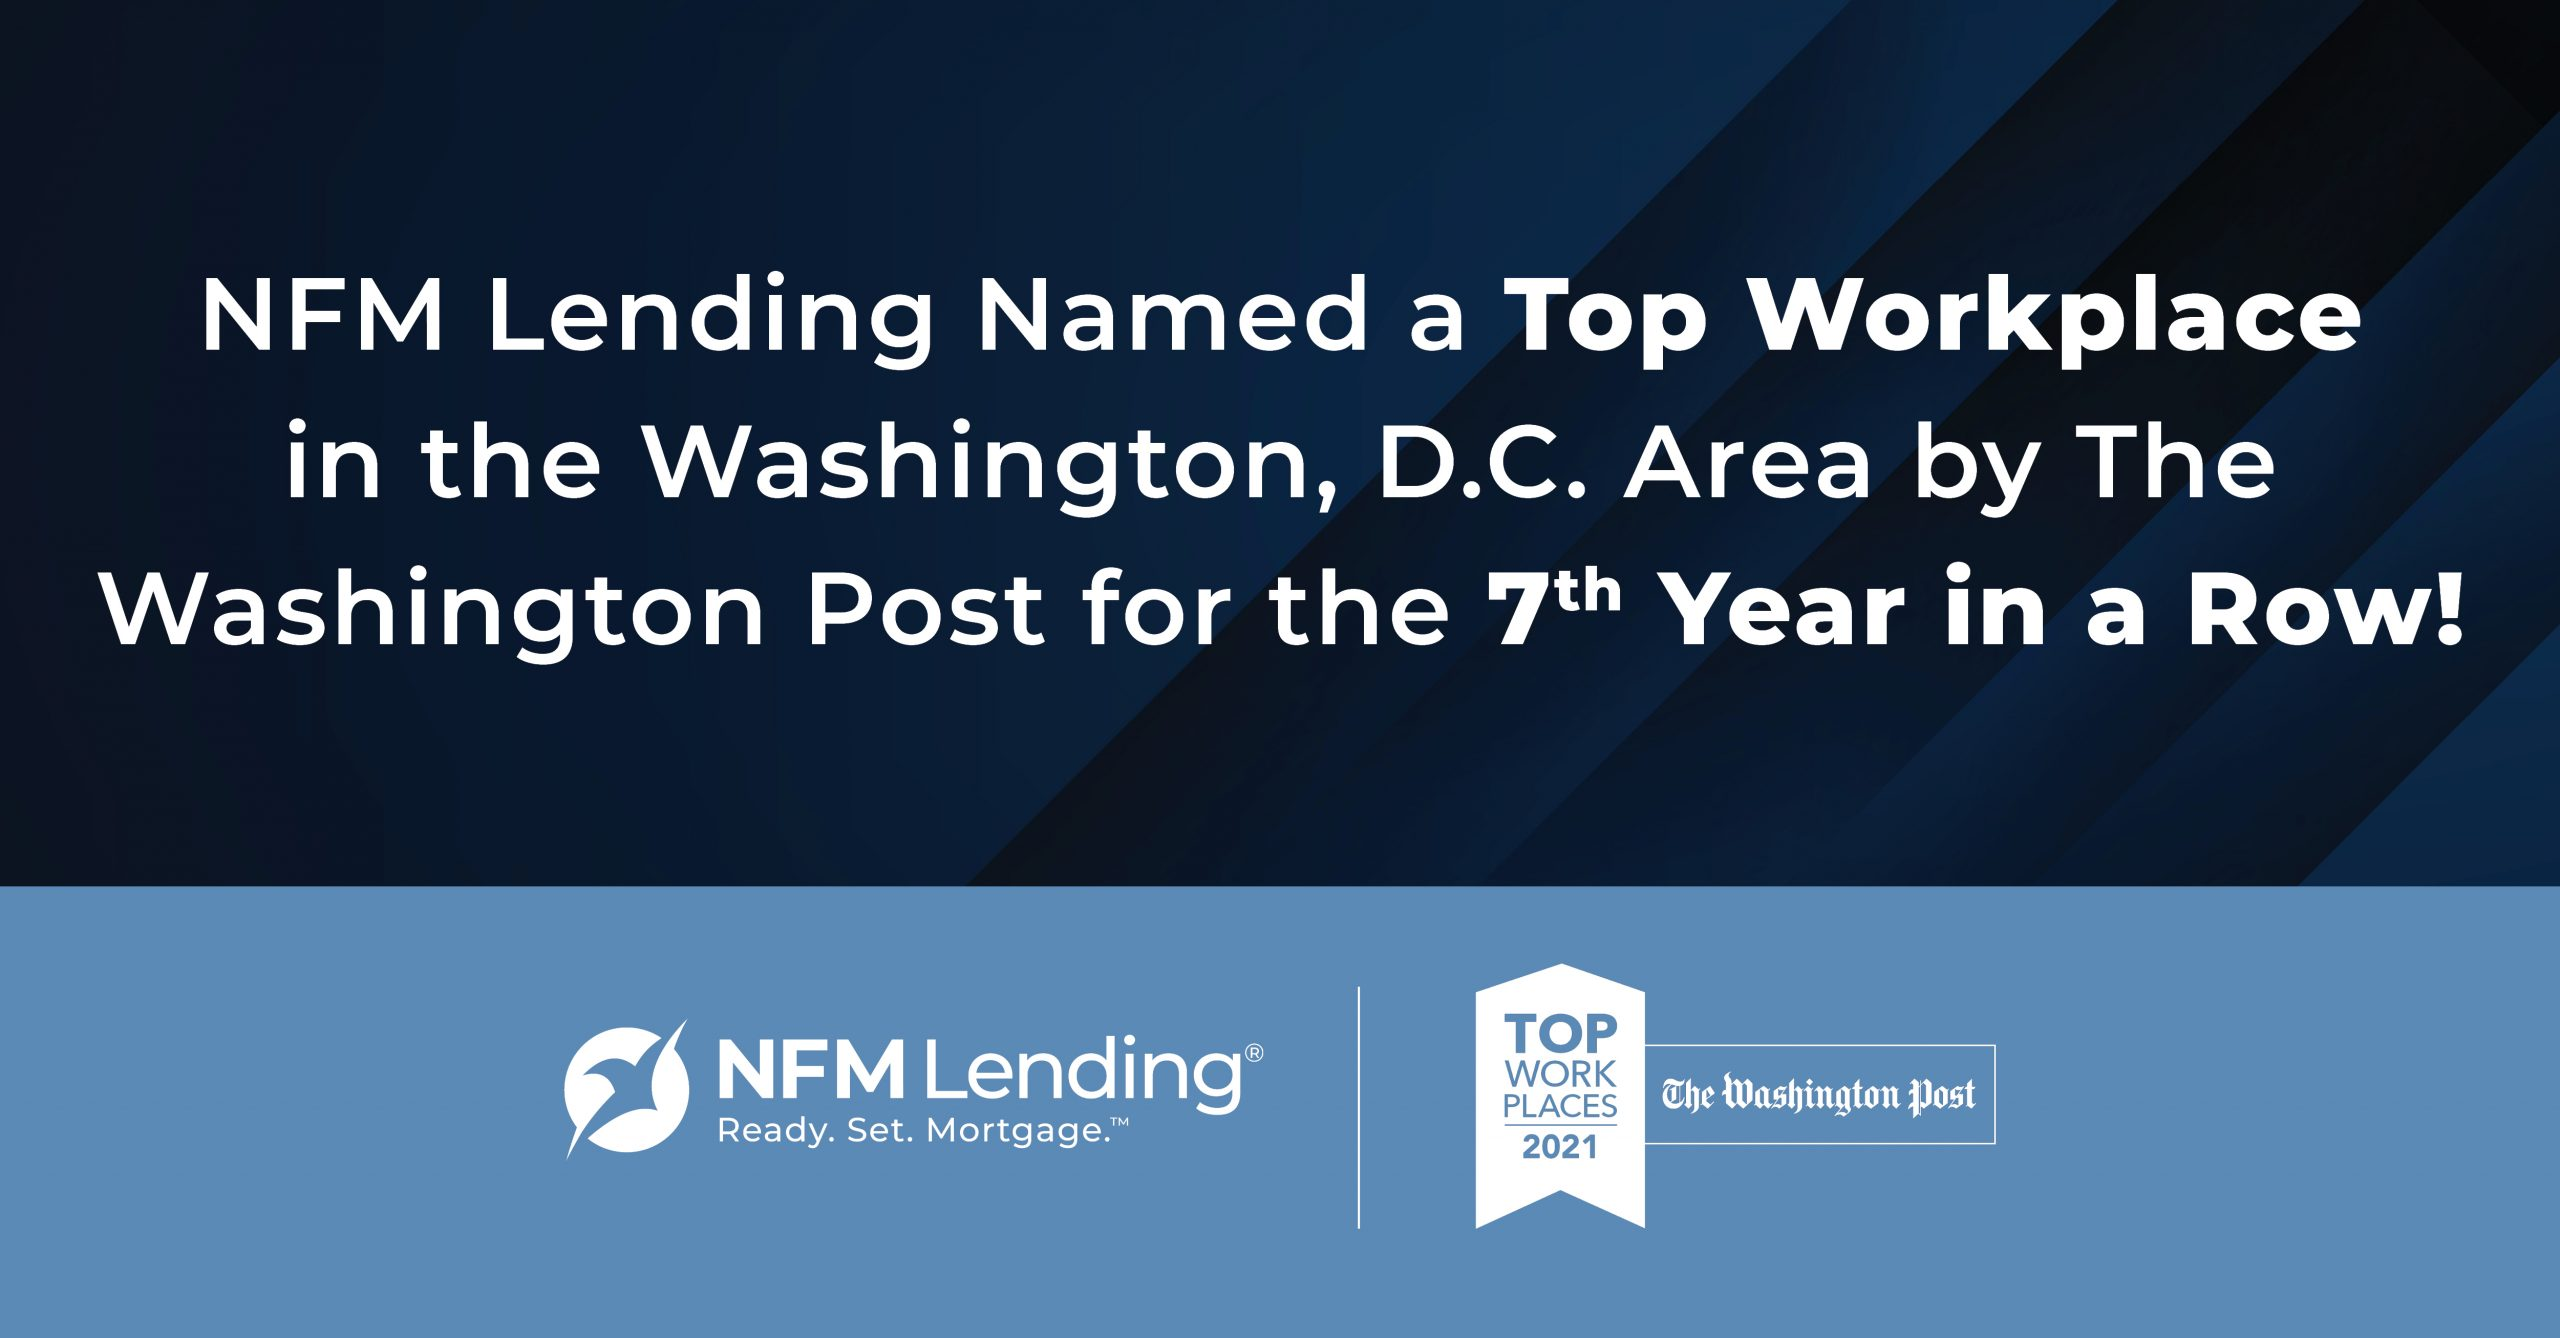 2021 Top WorkplaceIn the DC Area for 7th year